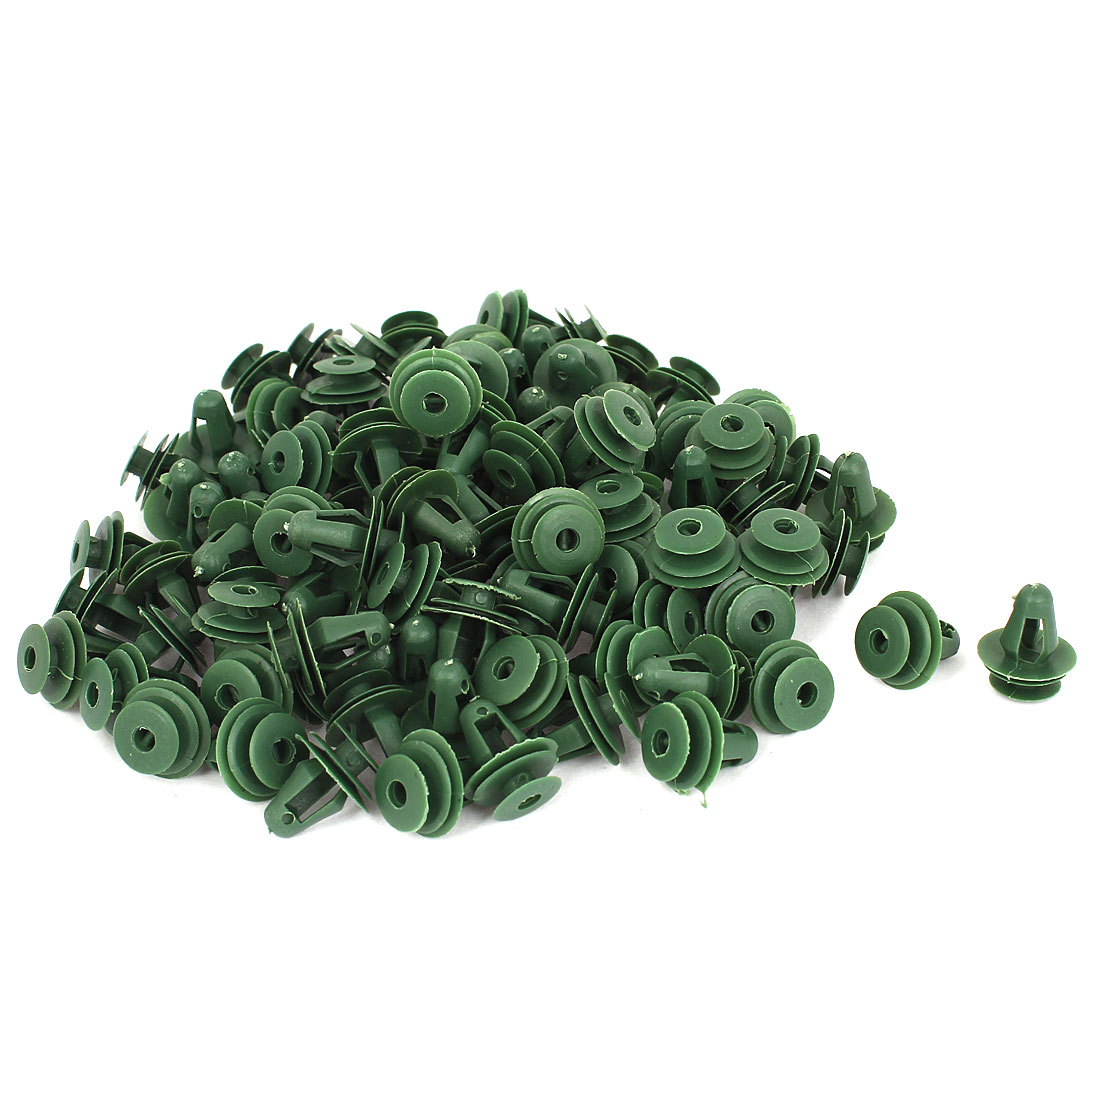 50 Pcs Green Plastic Rivet Trim Fastener Moulding Clips 9mm x 14mm x 17mm